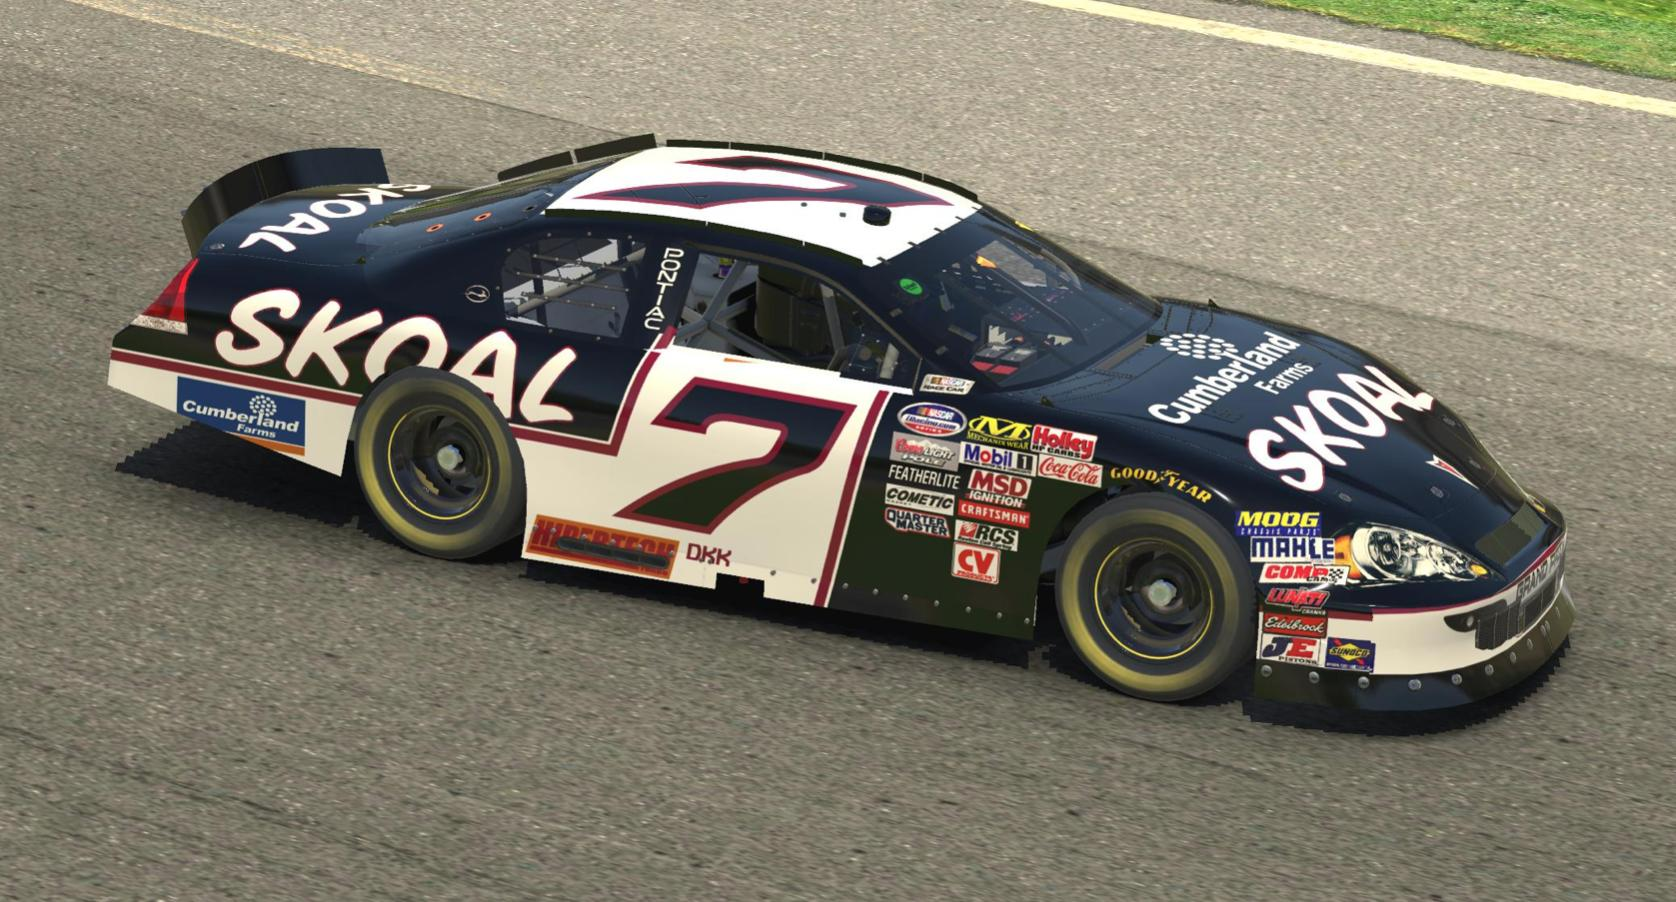 Preview of Dale Shaw #7 Pontiac NEP UPDATE by Justin M. Williams